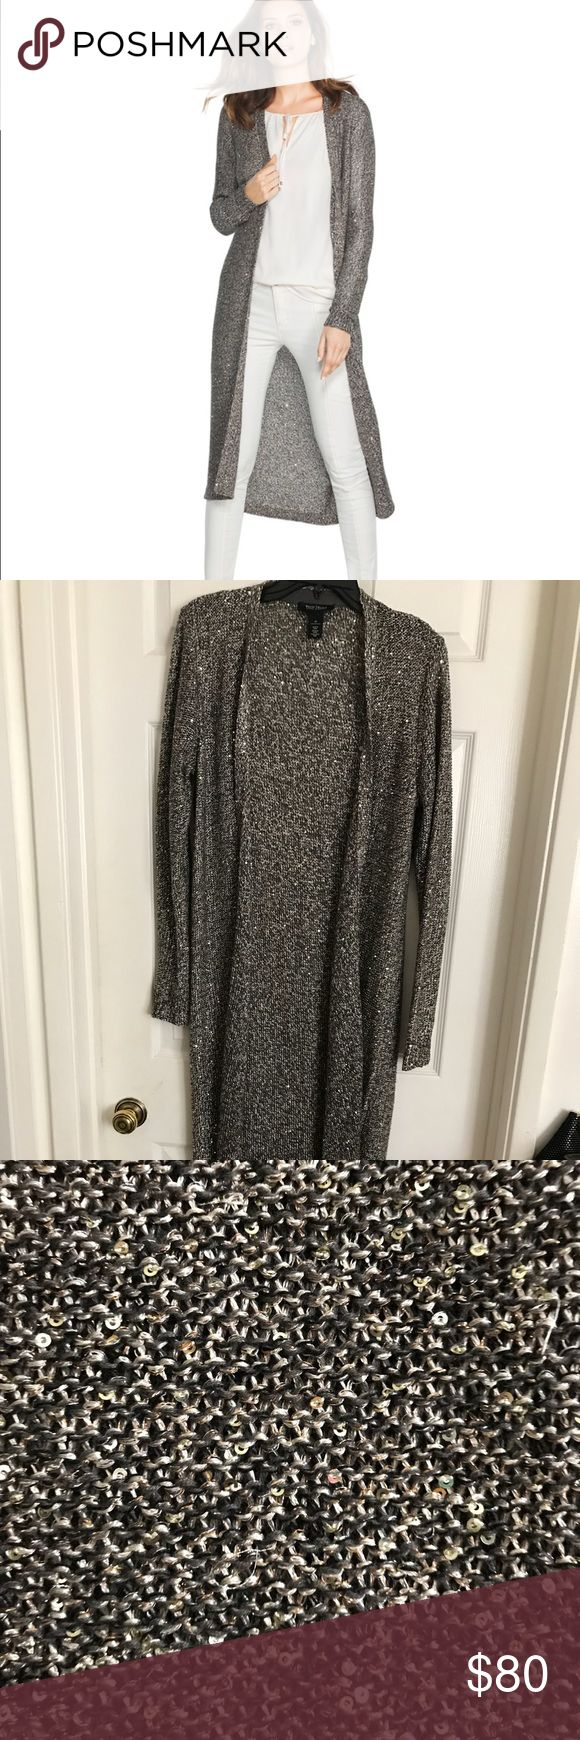 🌟NEW ITEM🌟 BNWT Shimmer Duster ❄️ BNWT ❄️ Wrap yourself in a lush, shimmery duster this season. The relaxed open front makes it an effortless layering piece, and the easy care makes it a go-to piece to keep warm in the cold months. Beautiful fabric! Never worn. I looked it over thoroughly and there is one small snag on the back right shoulder. It's shown in pic 6 and just below shows it zoomed in. No other flaws. Polyester/cotton/acrylic/metallic. Machine wash, cold. Smoke and pet free…